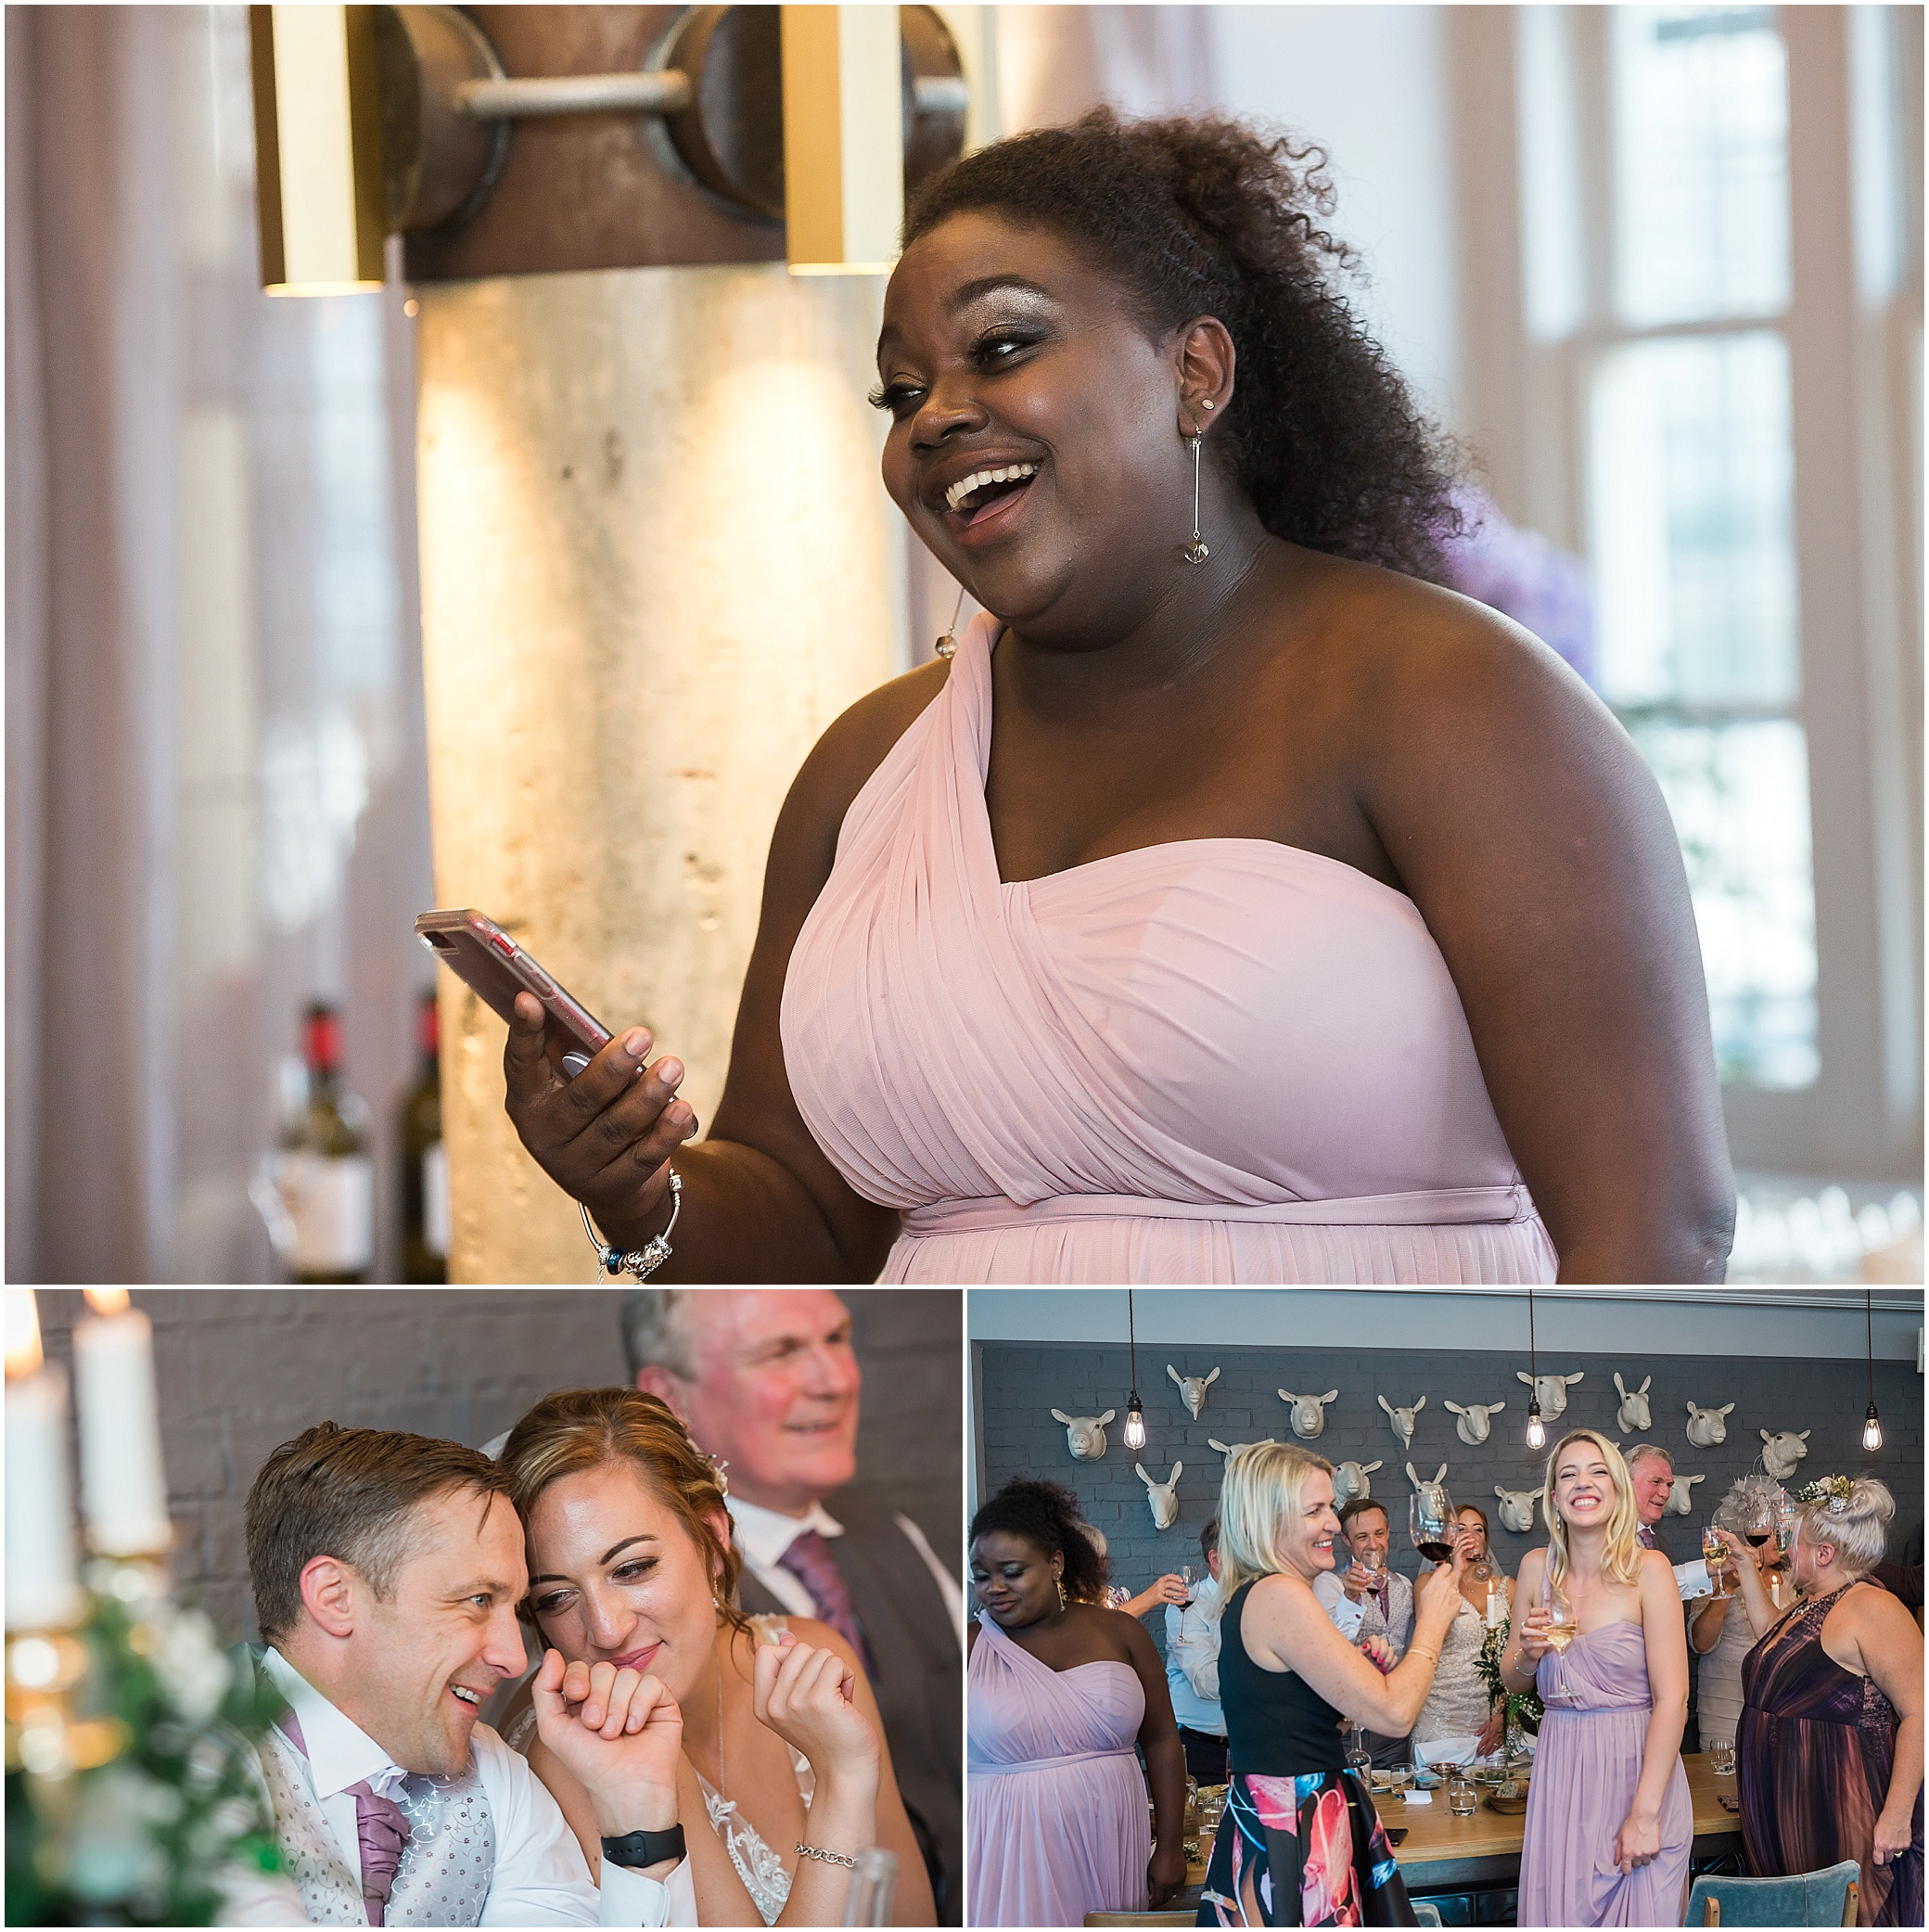 Bridesmaid gives a wedding speech at The Swan at Shakespeare's Globe on the Southbank, London